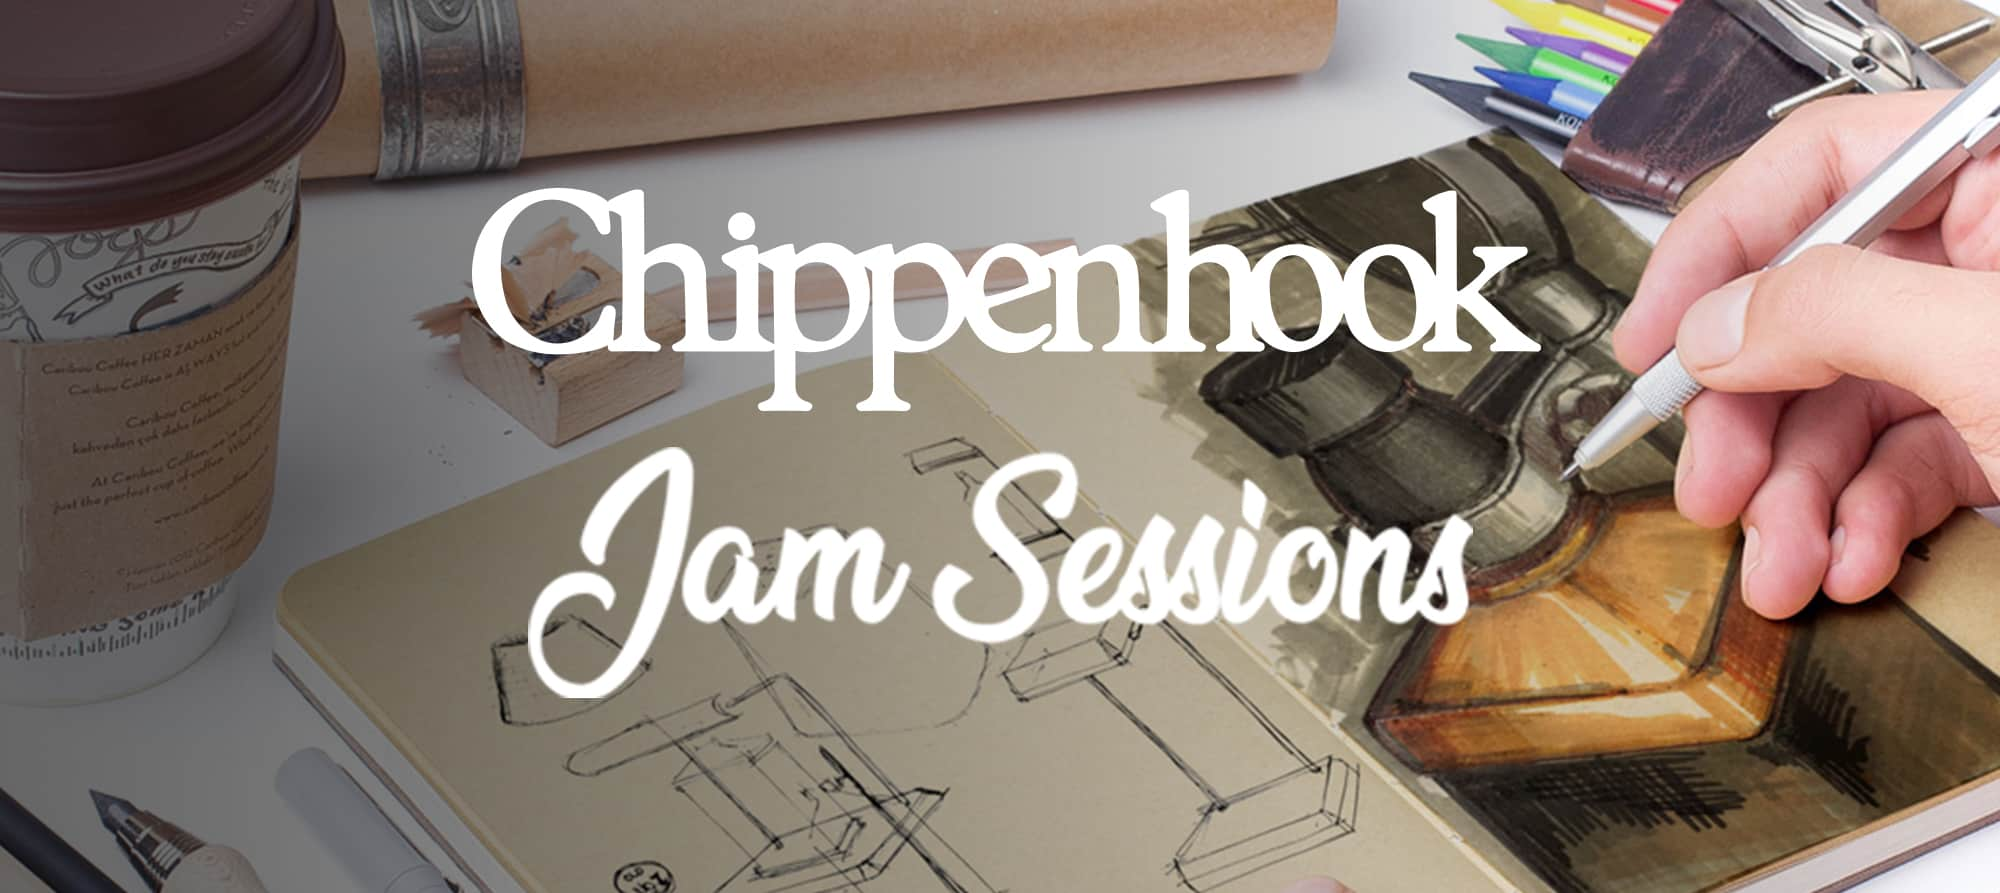 Chippenhook Innovations